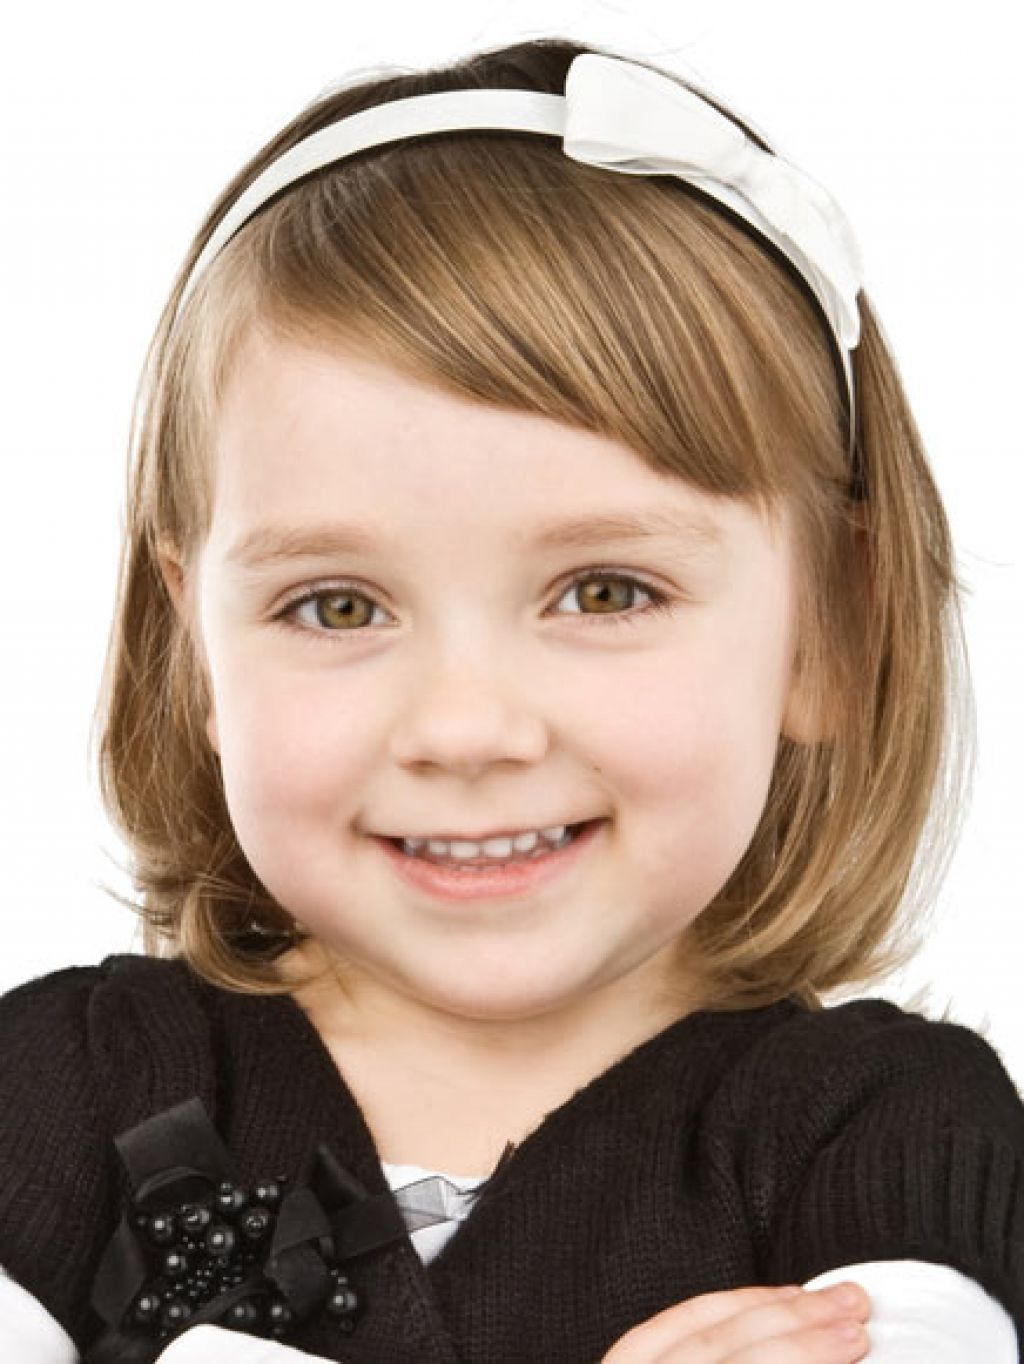 Image Result For Little Girls Short Haircut | Hairstyles For Little With Regard To Little Girl Short Hairstyles Pictures (View 10 of 25)